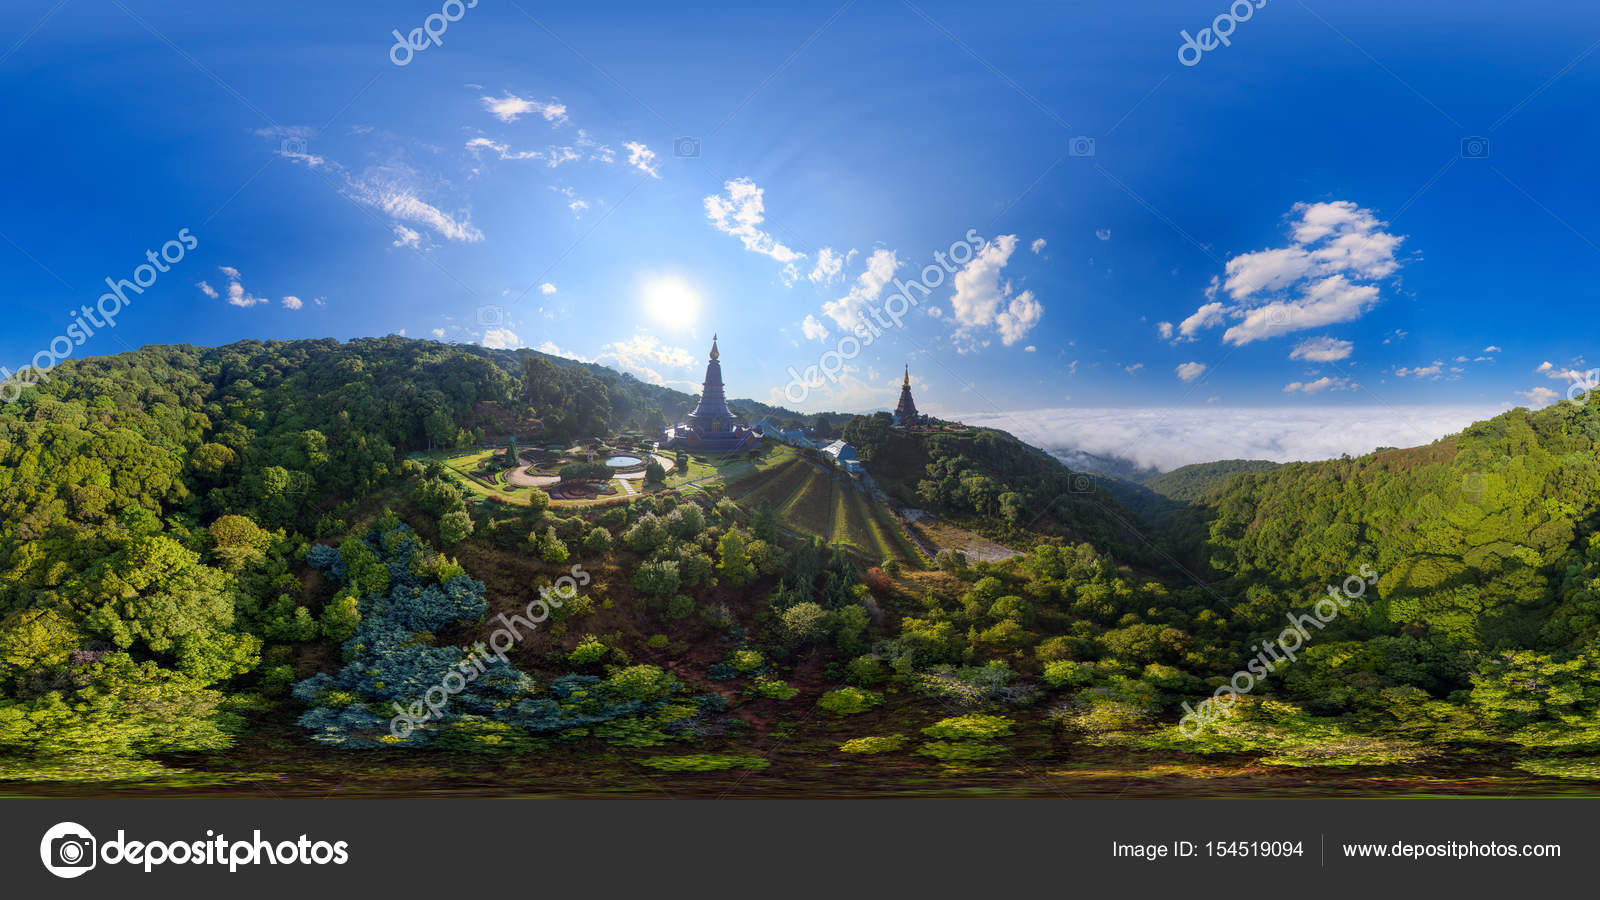 Aerial Panorama Of Doi Inthanon National Park ChiangMai Thailand Full VR 360 Degree Seamless Spherical Photo By Punyafamily